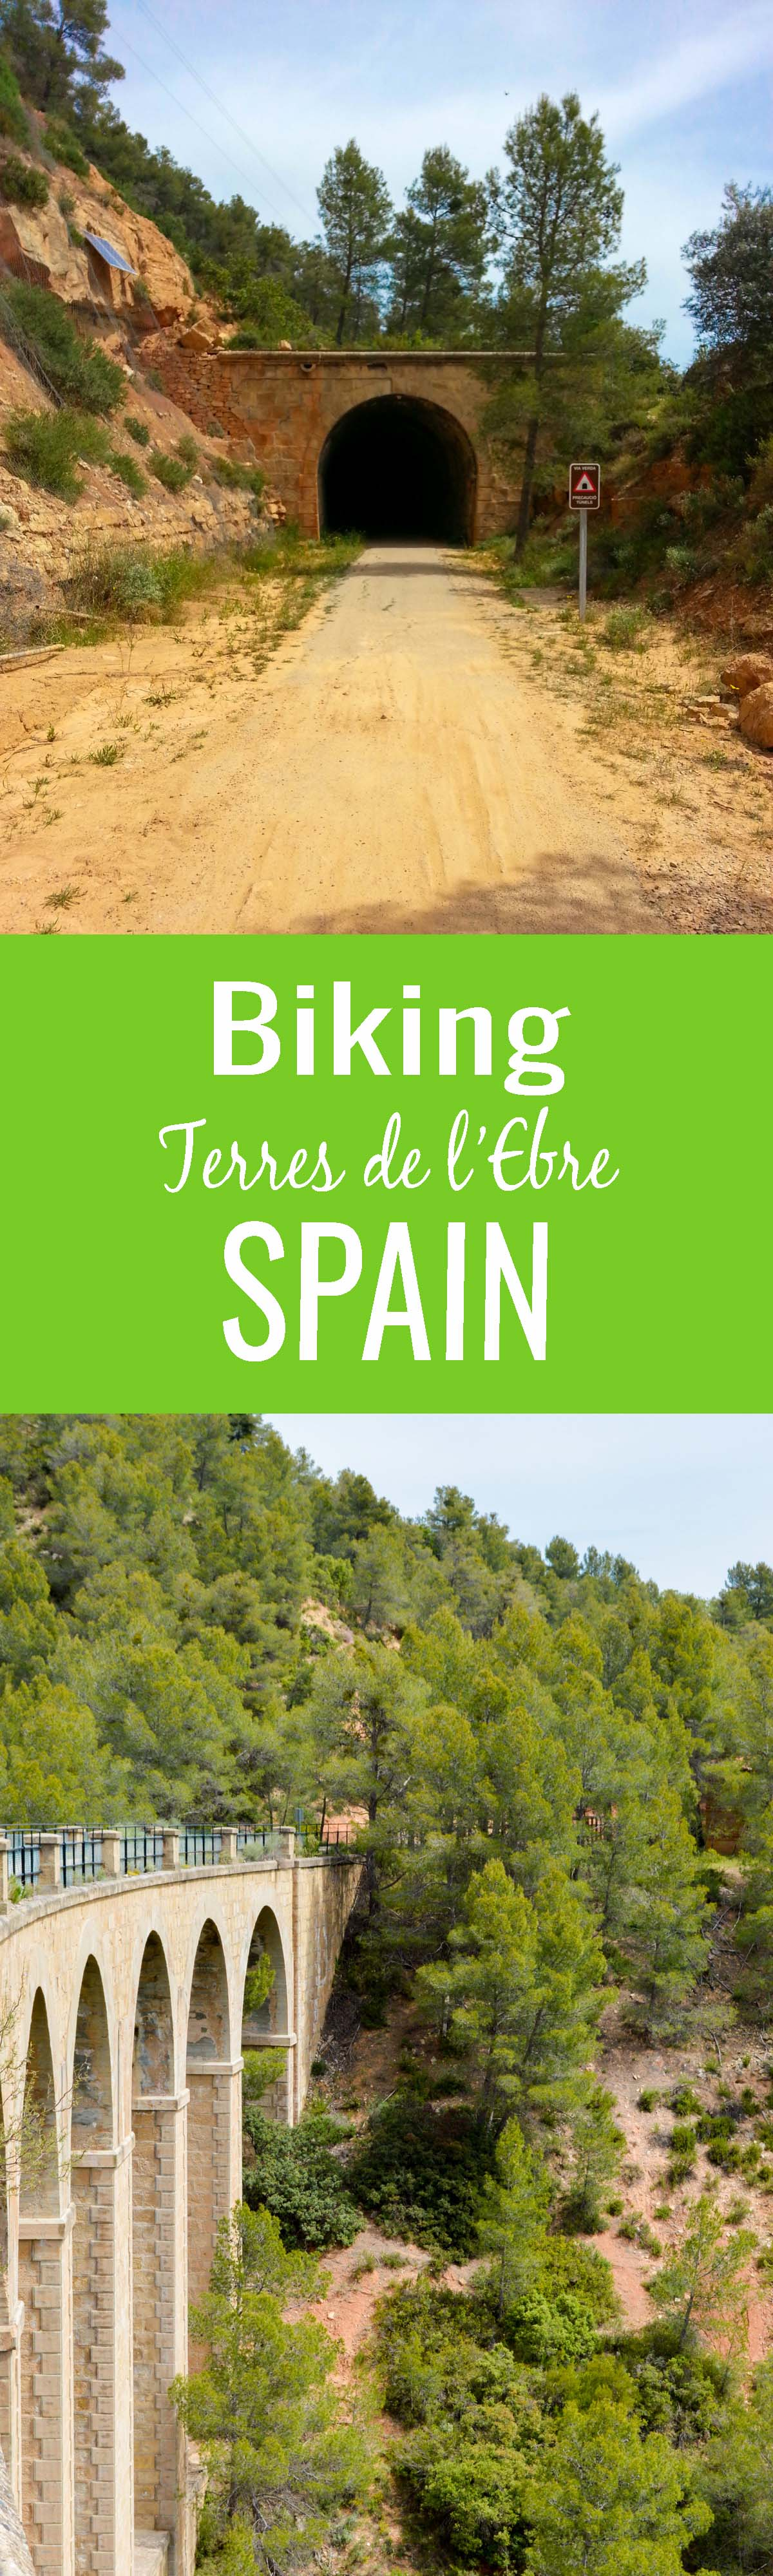 Biking Terres de l'Ebre Greenway – The best way to explore the food, culture, and natural attractions of this lesser traveled Spanish region is via bicycle. A unique way to travel Spain!